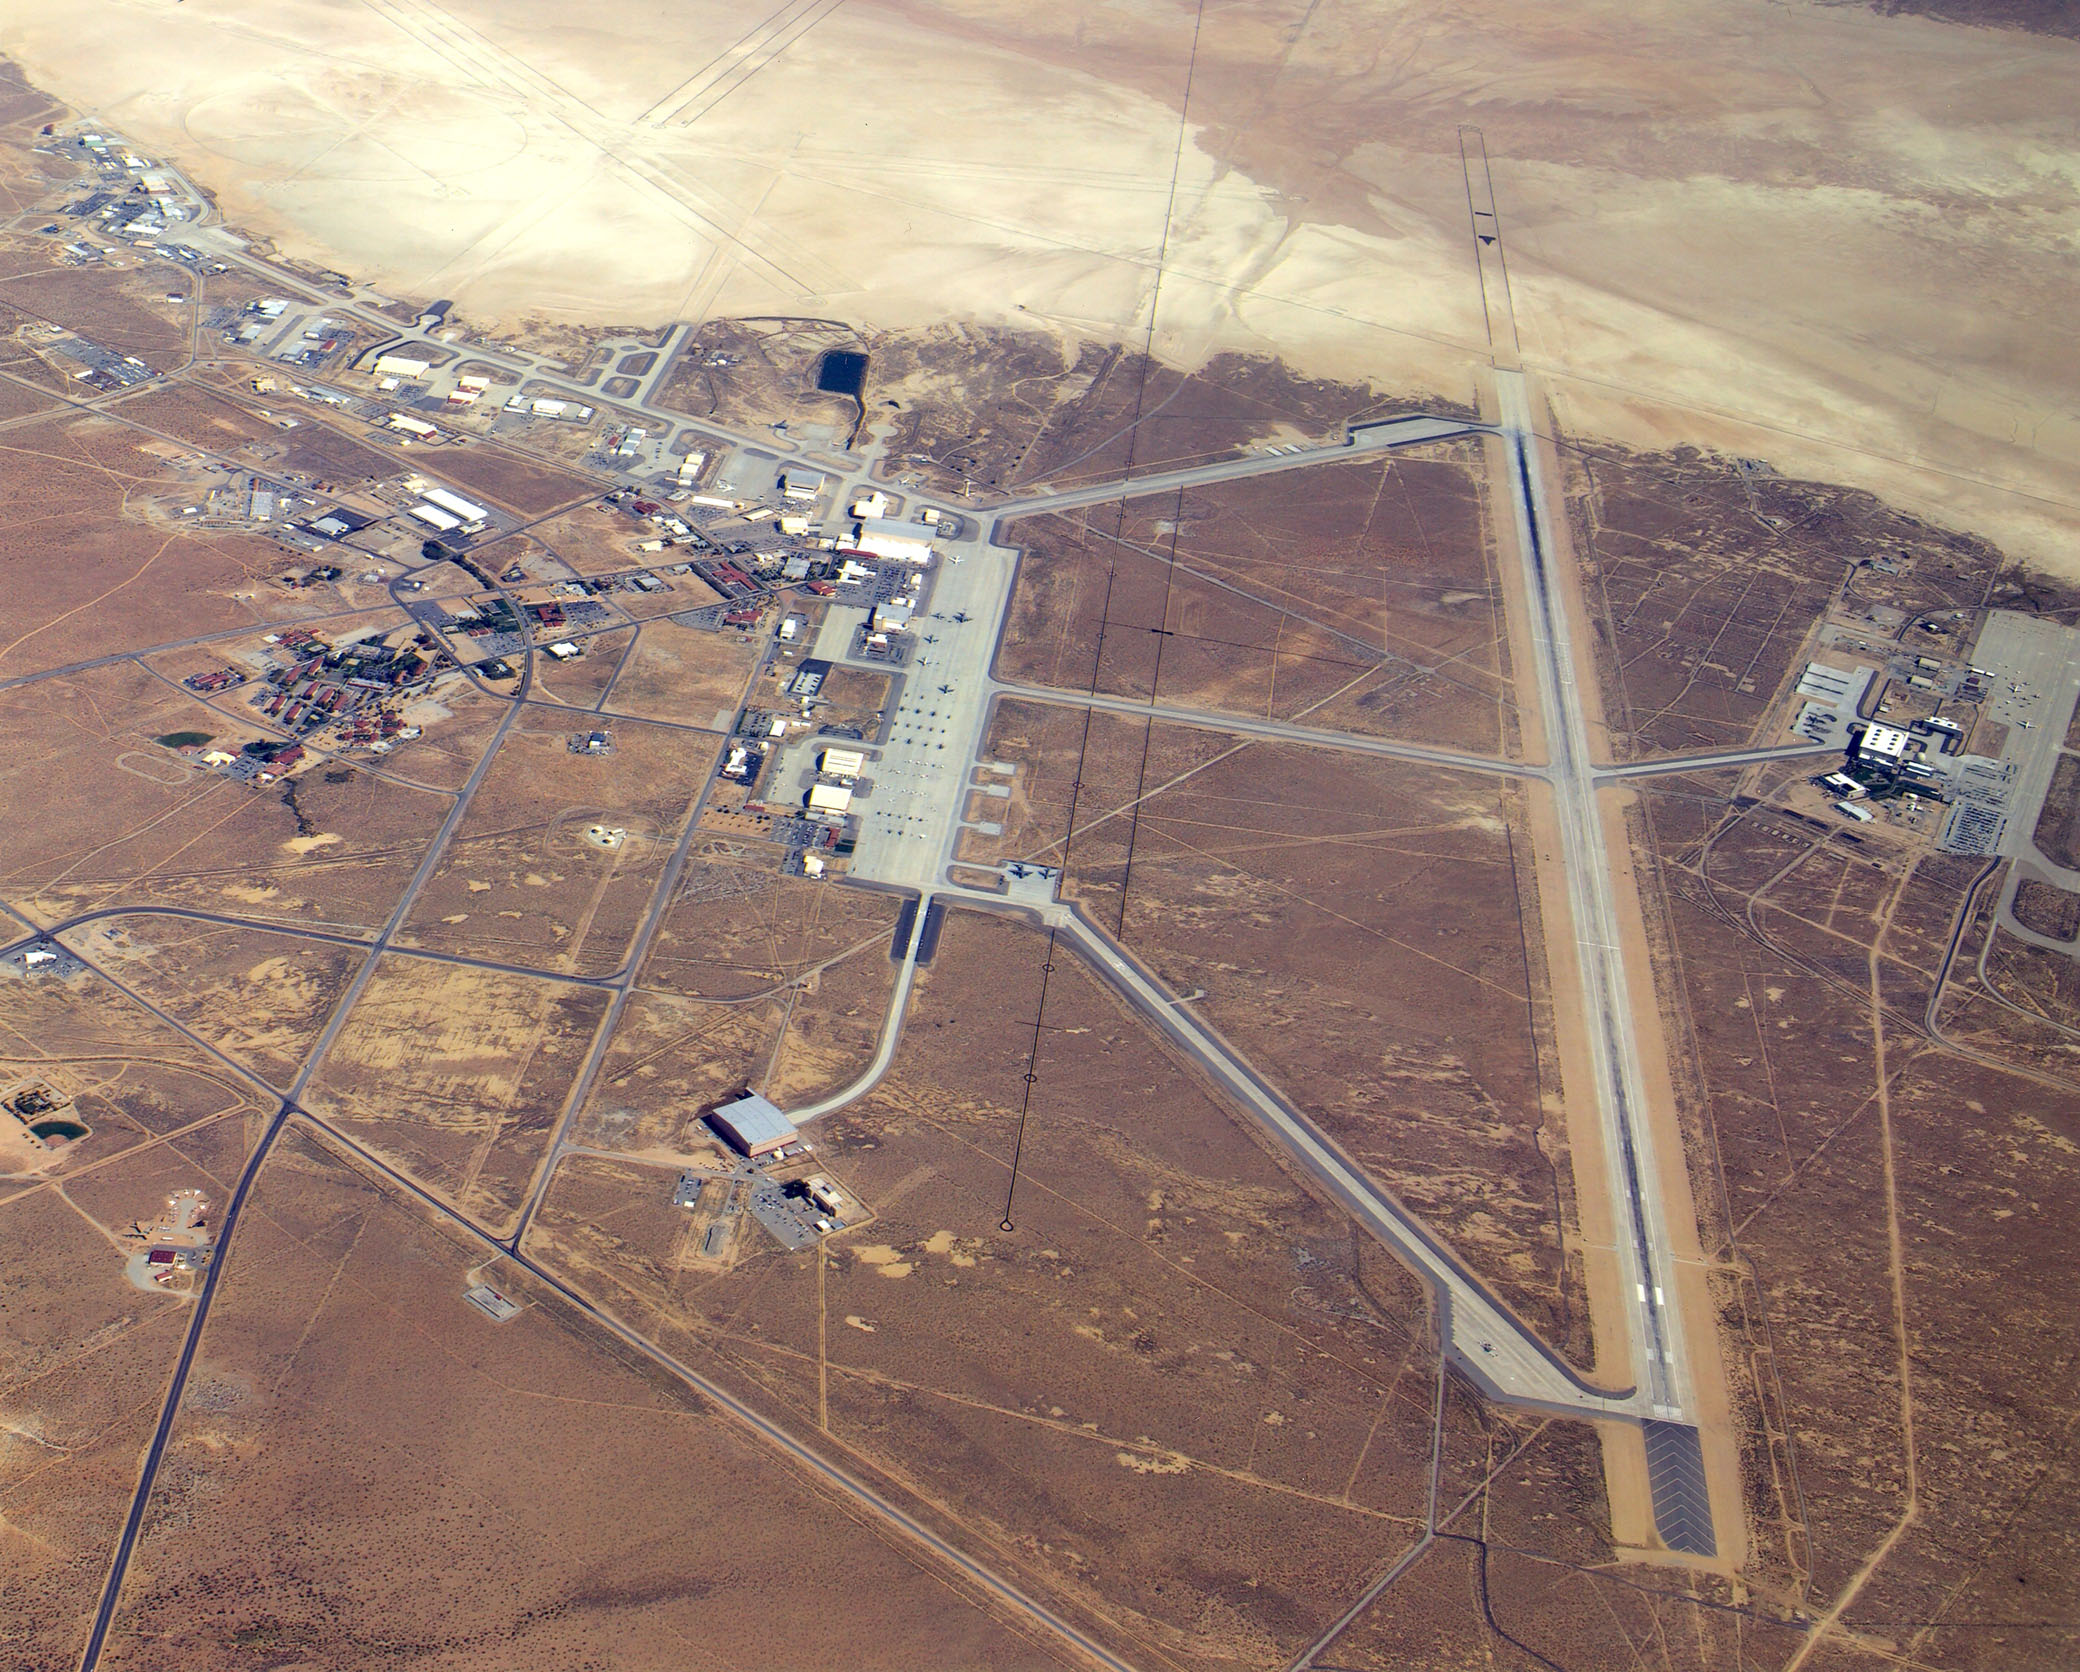 Peste 1000 de idei despre Edwards Air Force Base pe Pinterest.